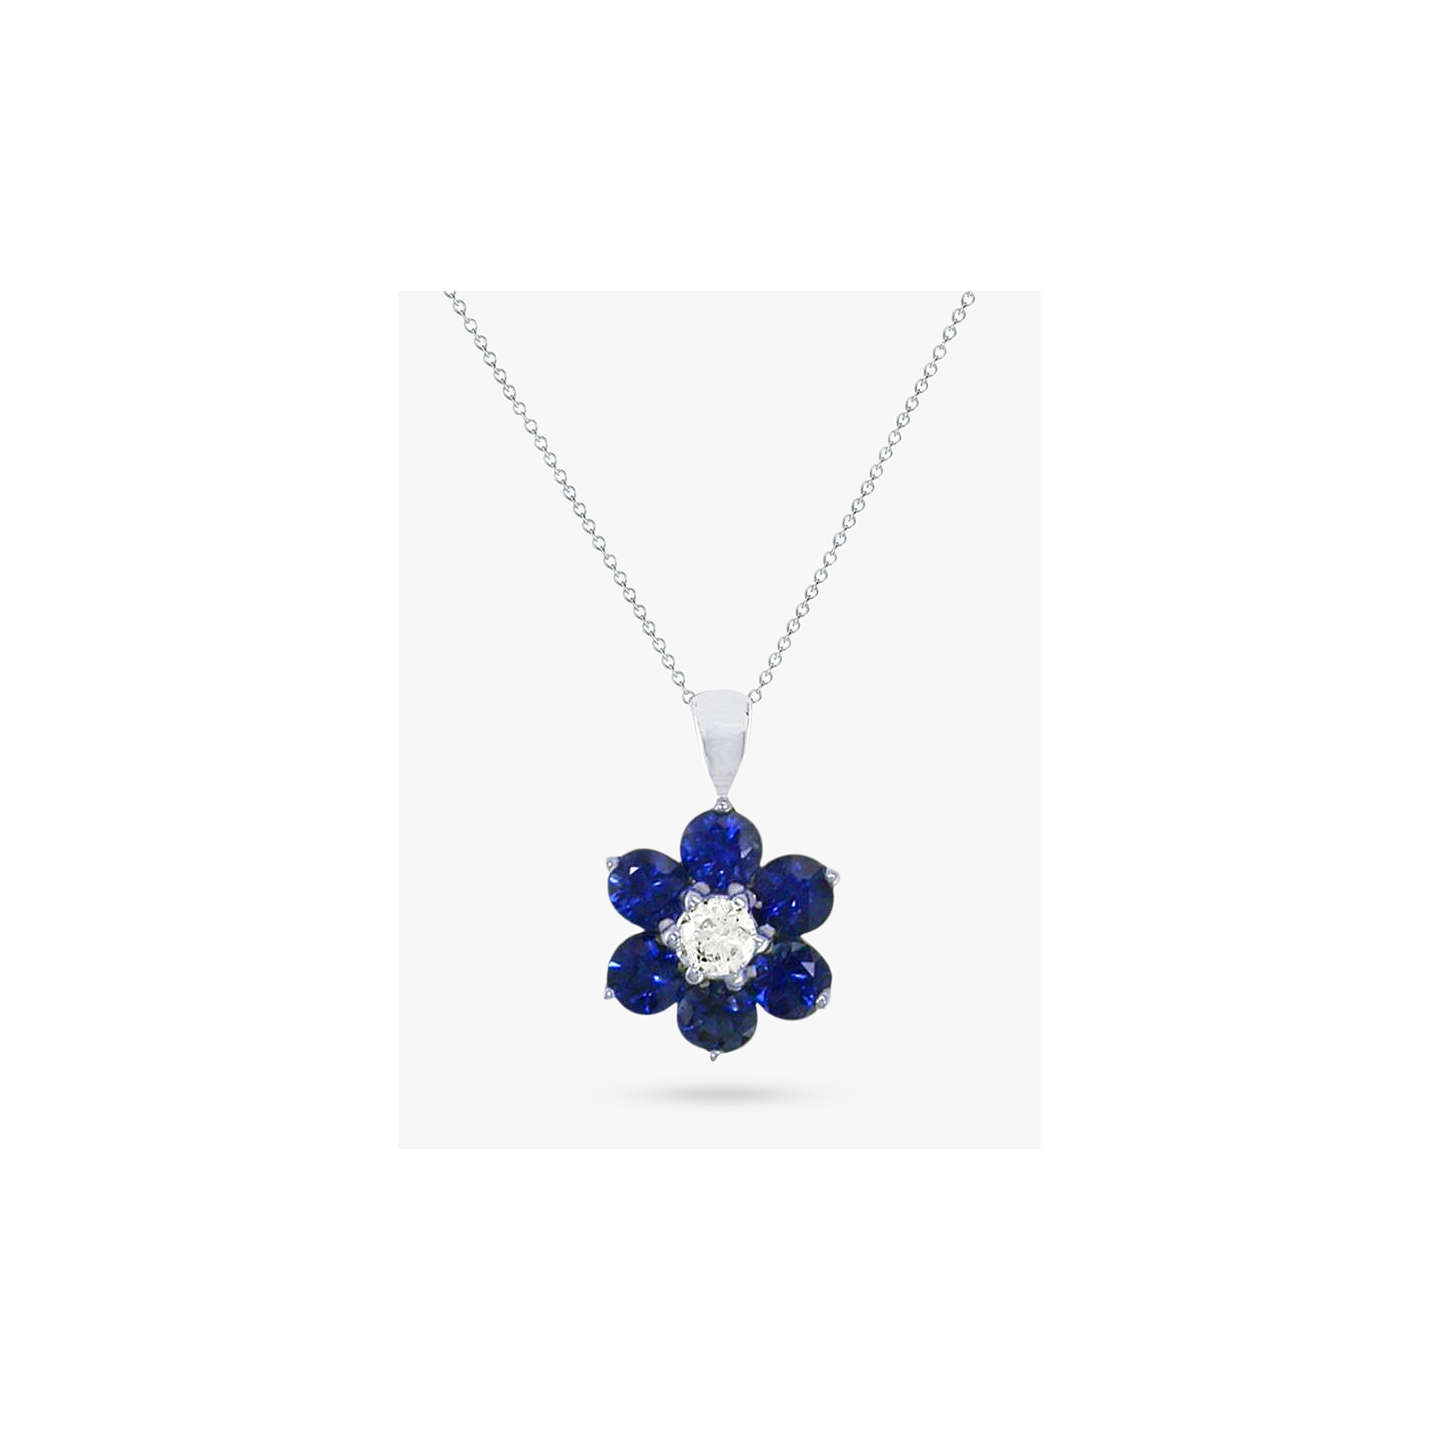 silver solitaire image azeze of the product sterling women created pendant jewelrypalace ocean heart necklace sapphire for products blue inches